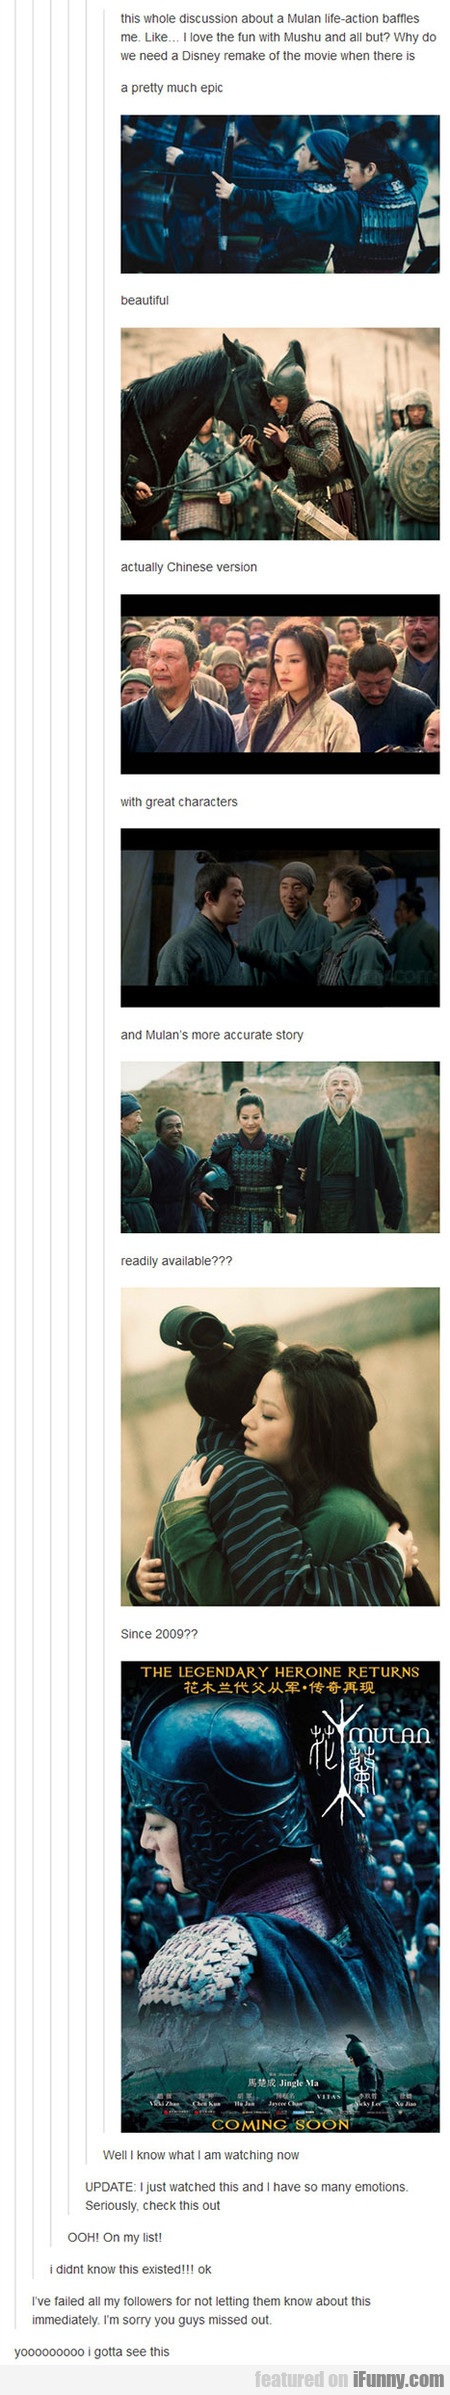 A Live-action Mulan Movie?